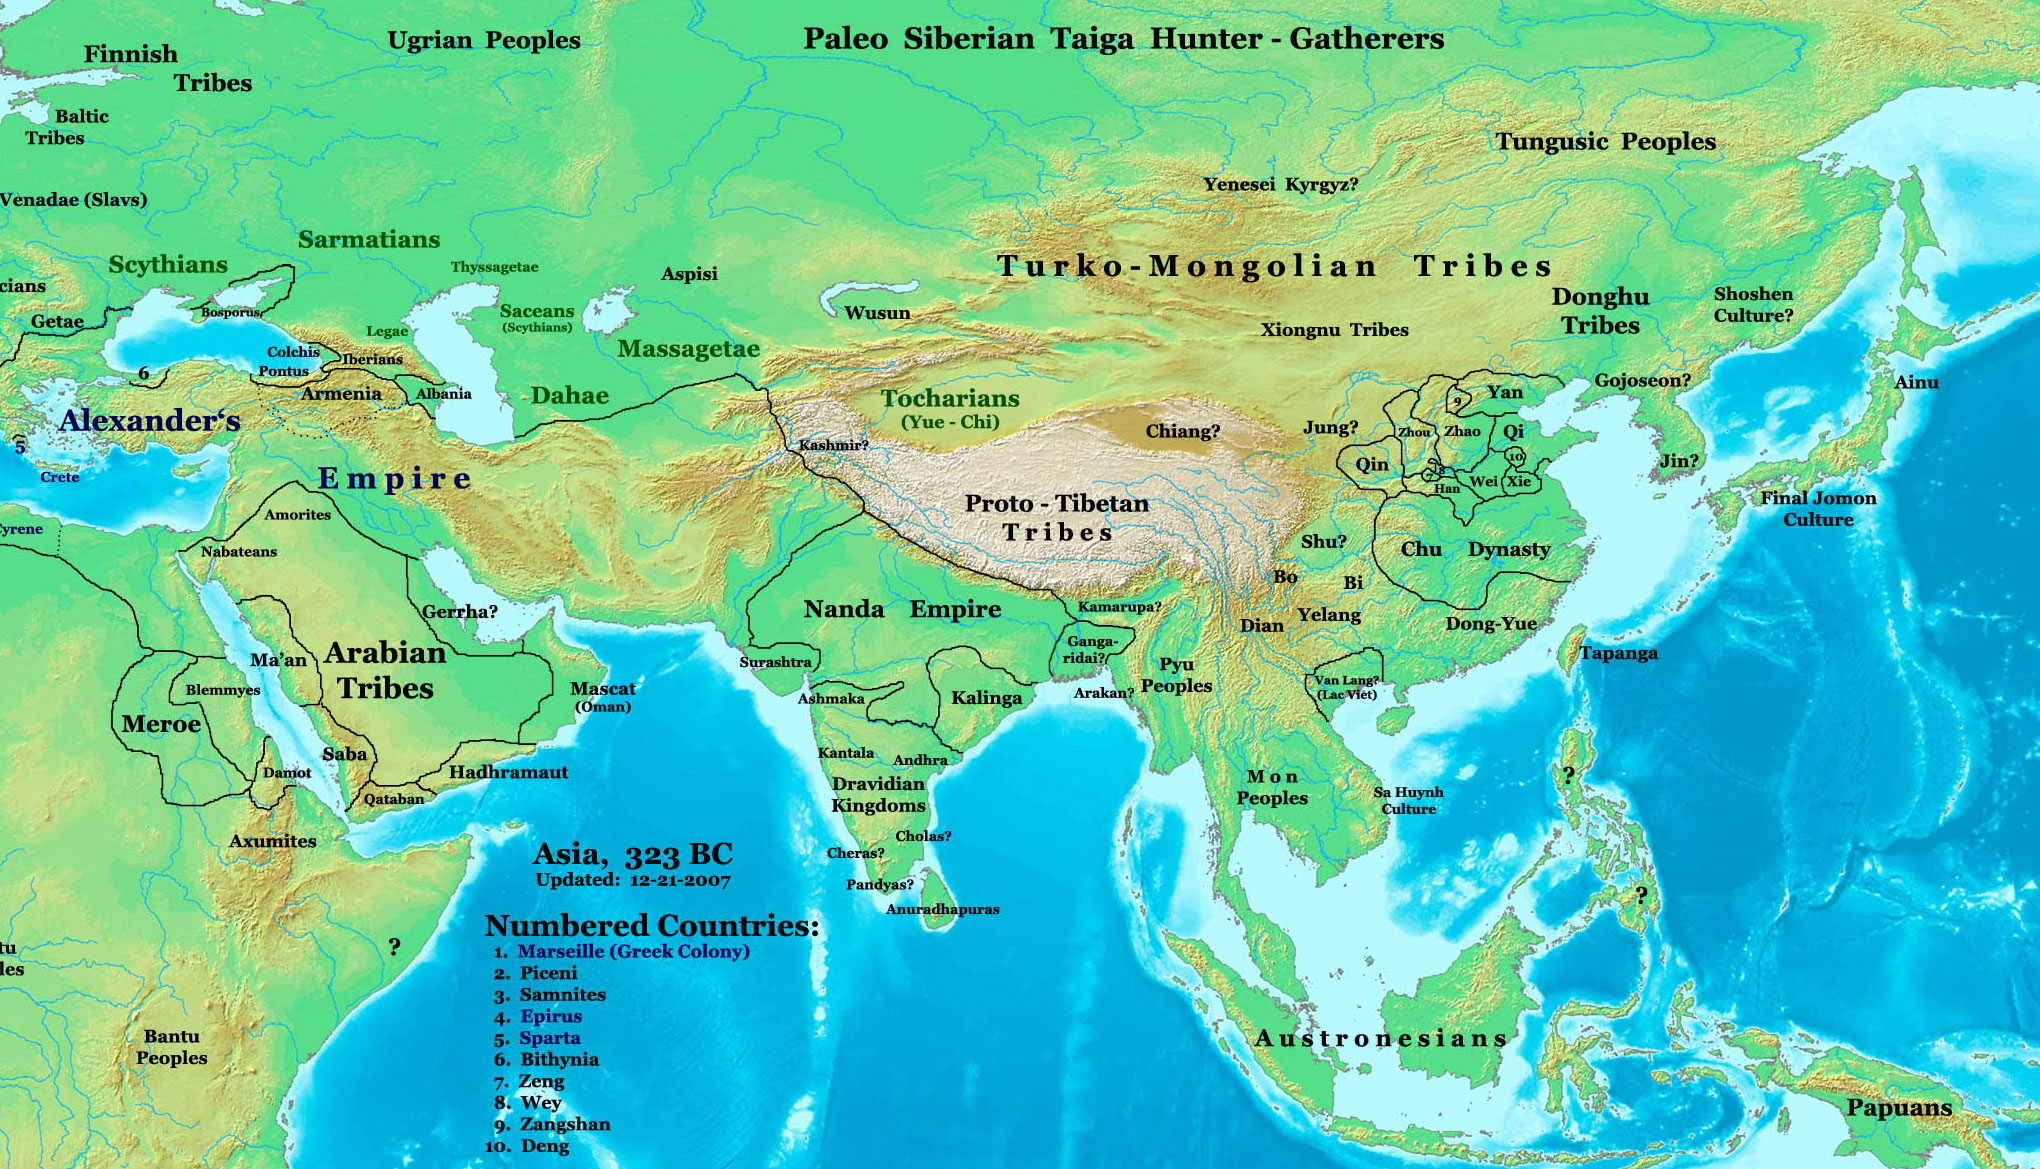 Excavations Show the Cultural Continuity of the Vedic Harappans